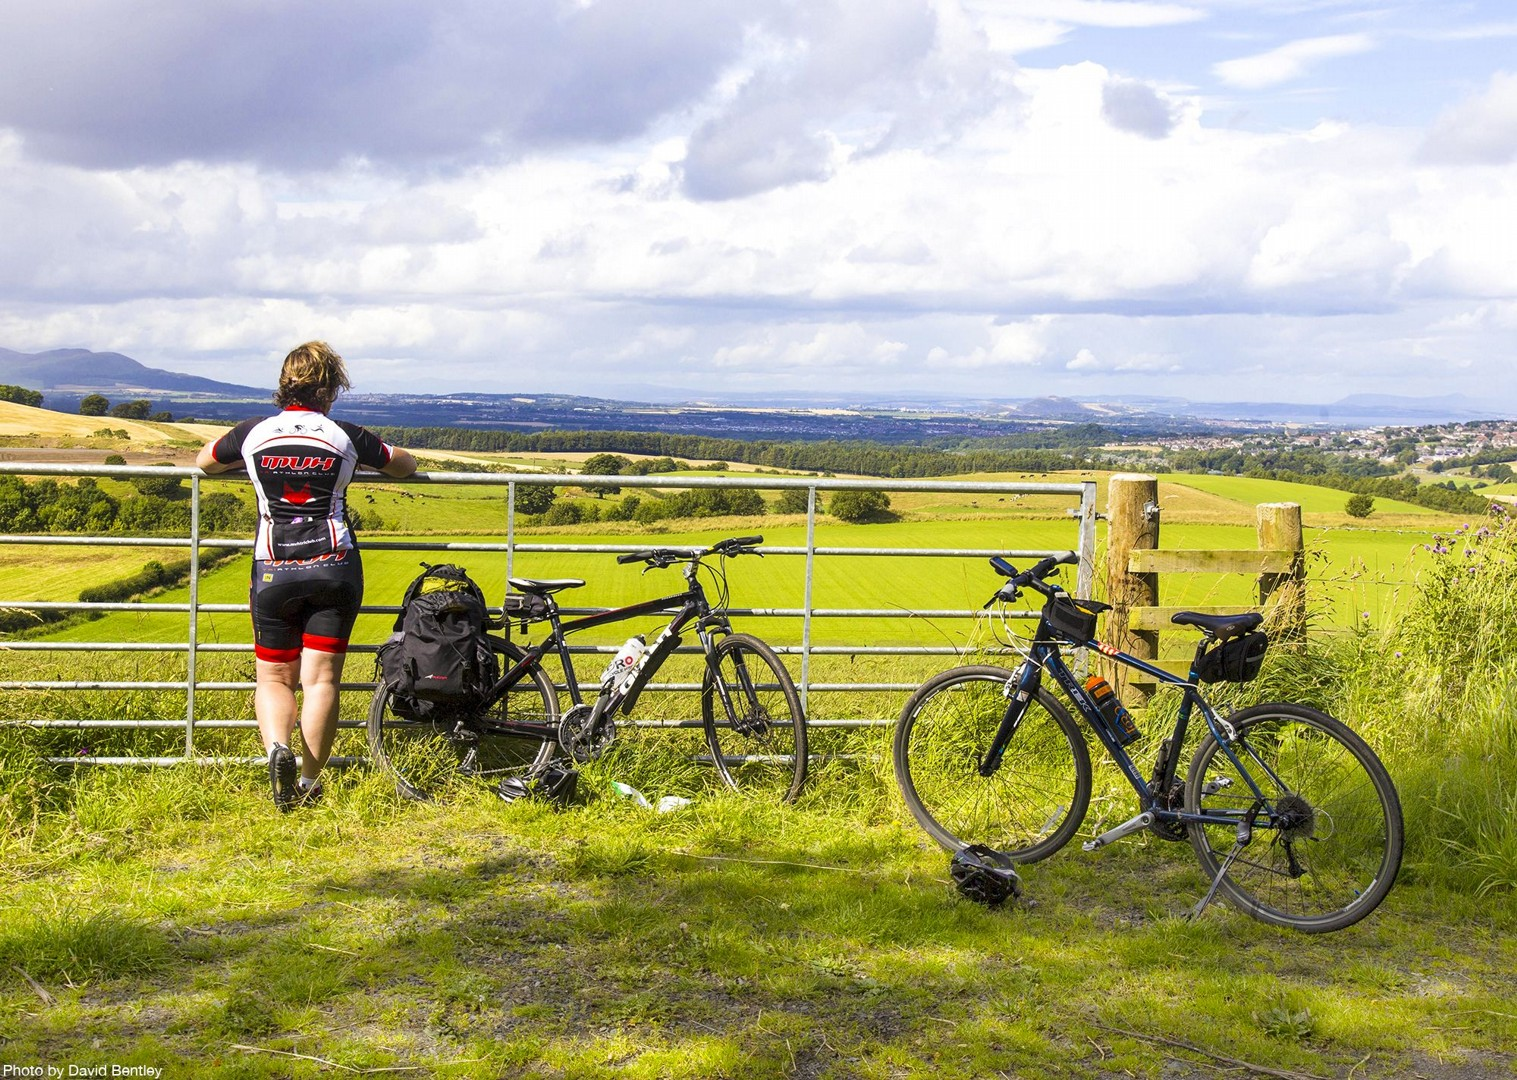 rural-north-east-uk-northumberland-countryside-2-day-bike-tour-traditional.jpg - UK - Northumberland Coast - 2 Days - Self-Guided Leisure Cycling Holiday - Leisure Cycling